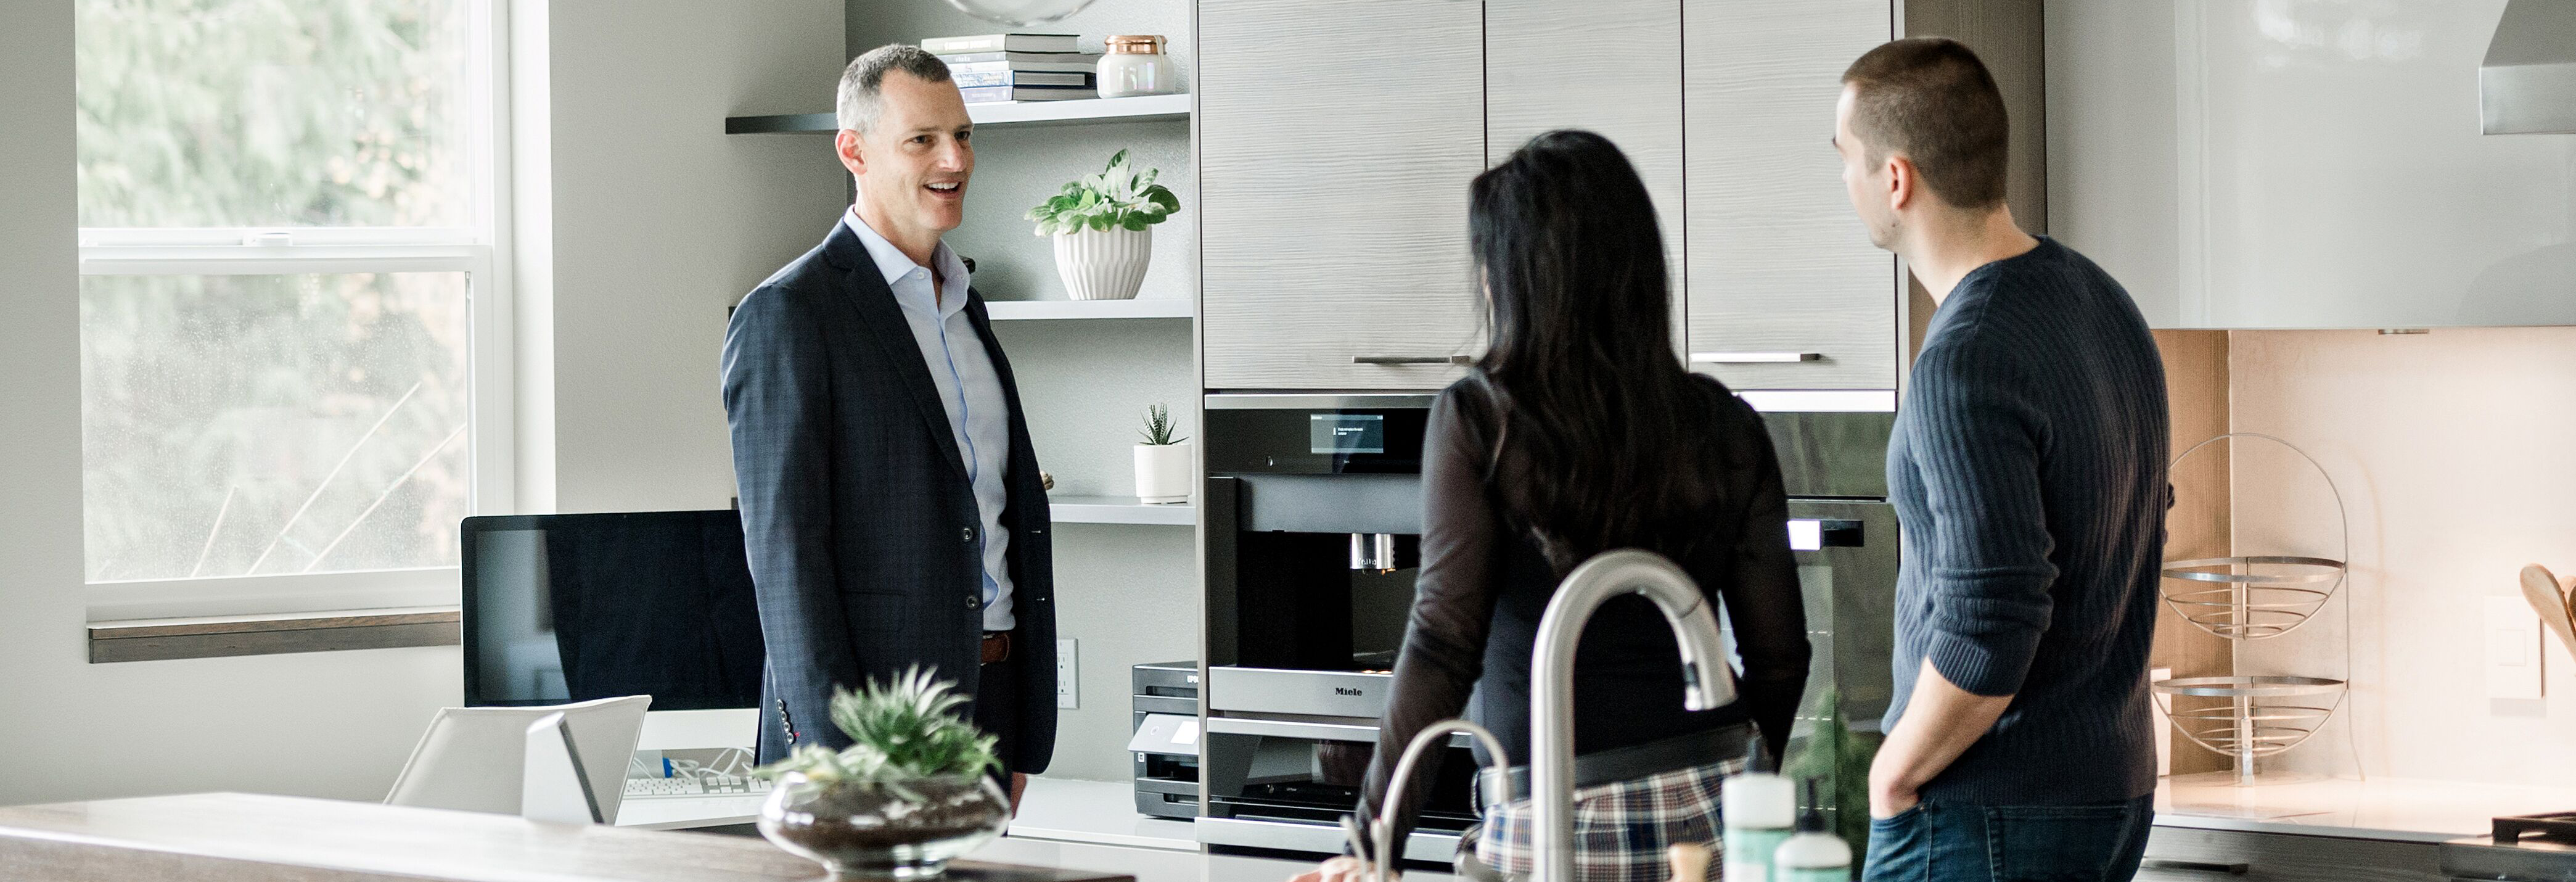 BIG DECISIONS NEED PRECISION | Don Weintraub Real Estate Group